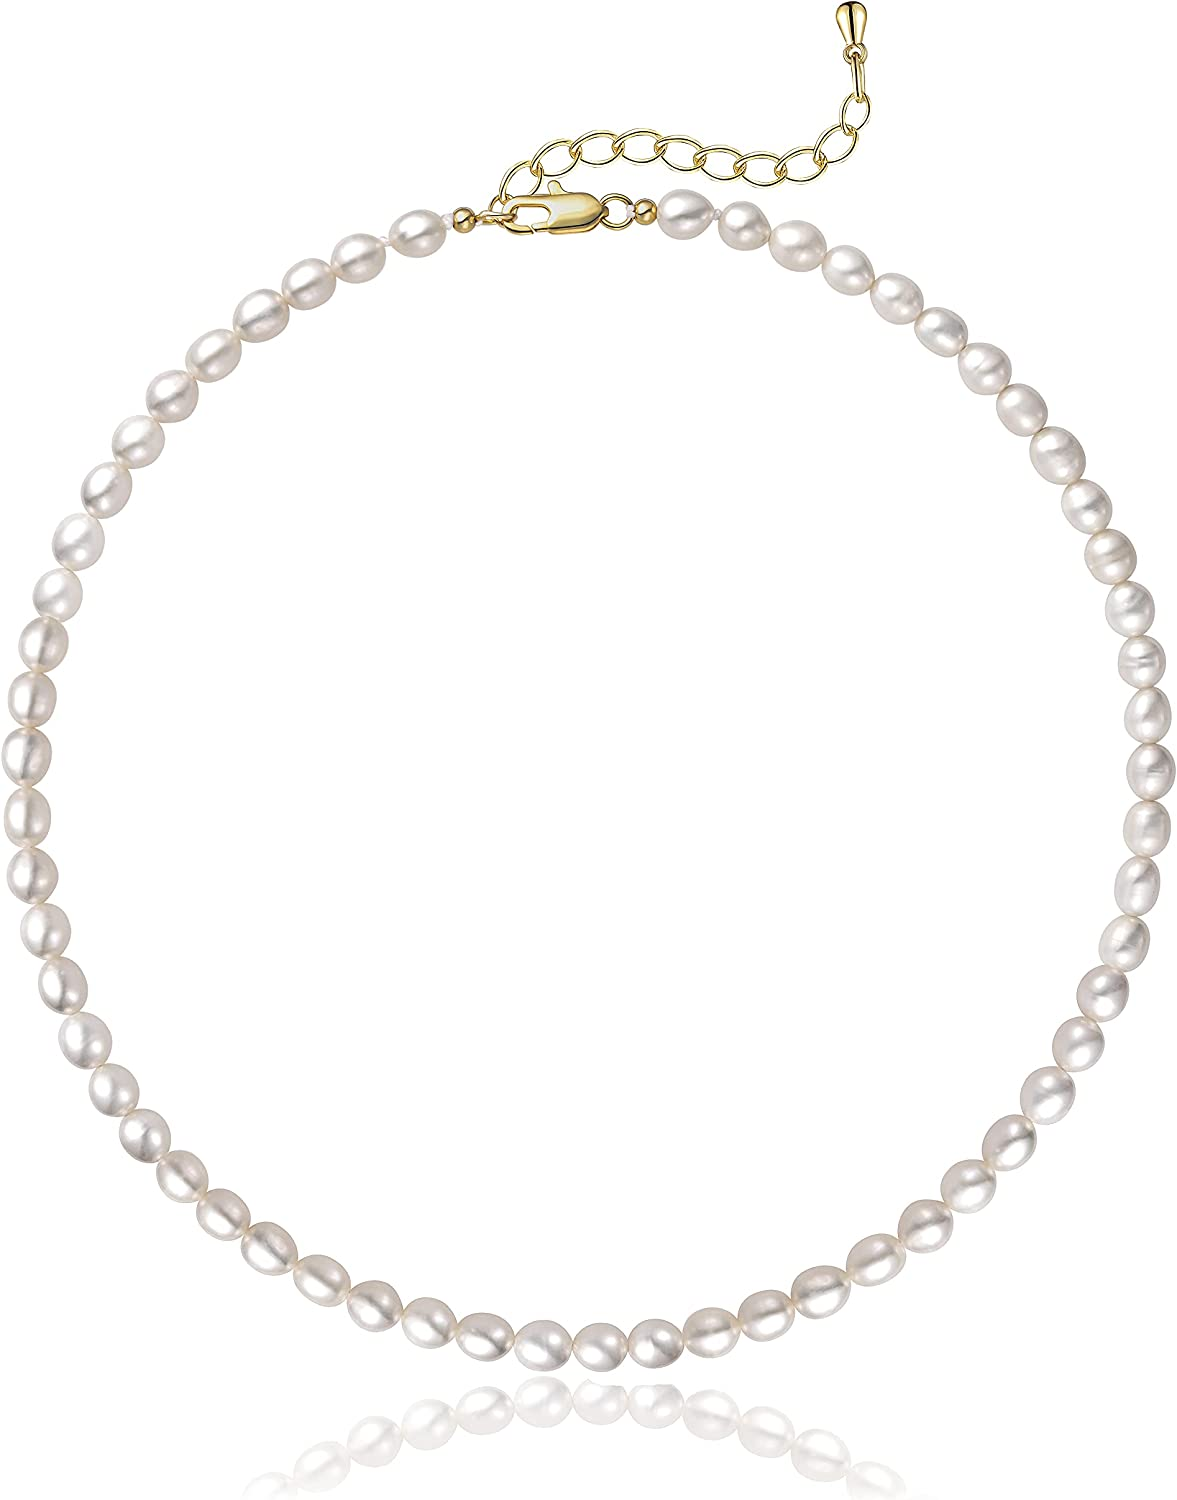 Cowlyn Pearl Necklace 5-7mm Oval White Baroque Pearls Strand Choker Handmade Chain Dainty Mother's Day Birthday Gifts for Women Girls(with Gift Box)